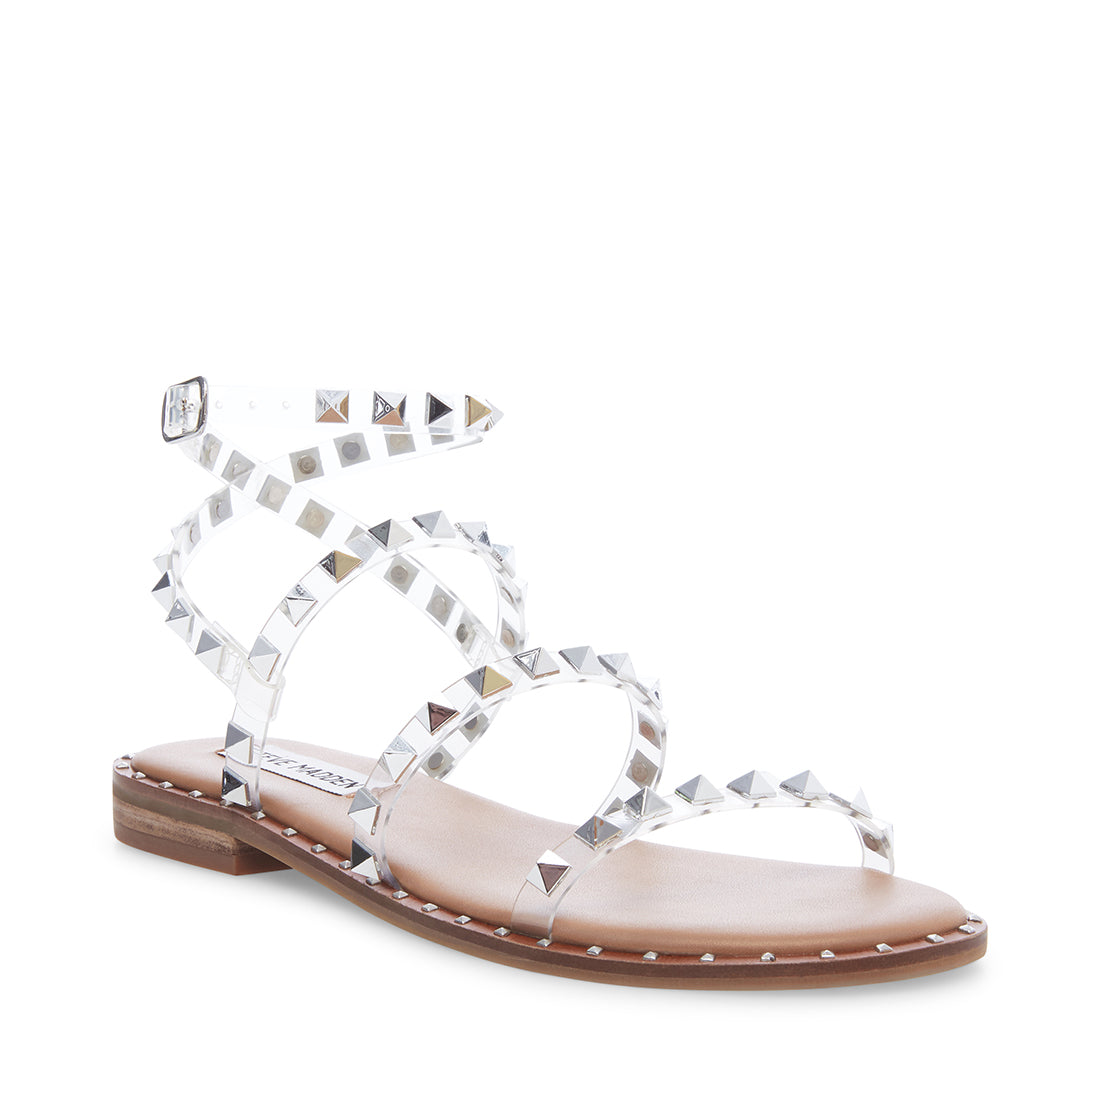 Travel - Studded Gladiator Sandal in Clear Steve Madden 194068112833  194068112802  194068112772  194068112741  194068112710  194068112680  194068112659  194068112628  194068112598  194068112567  194068112536 These edgy vinyl gladiator sandals with pyramid studs add instant attitude to any outfit.